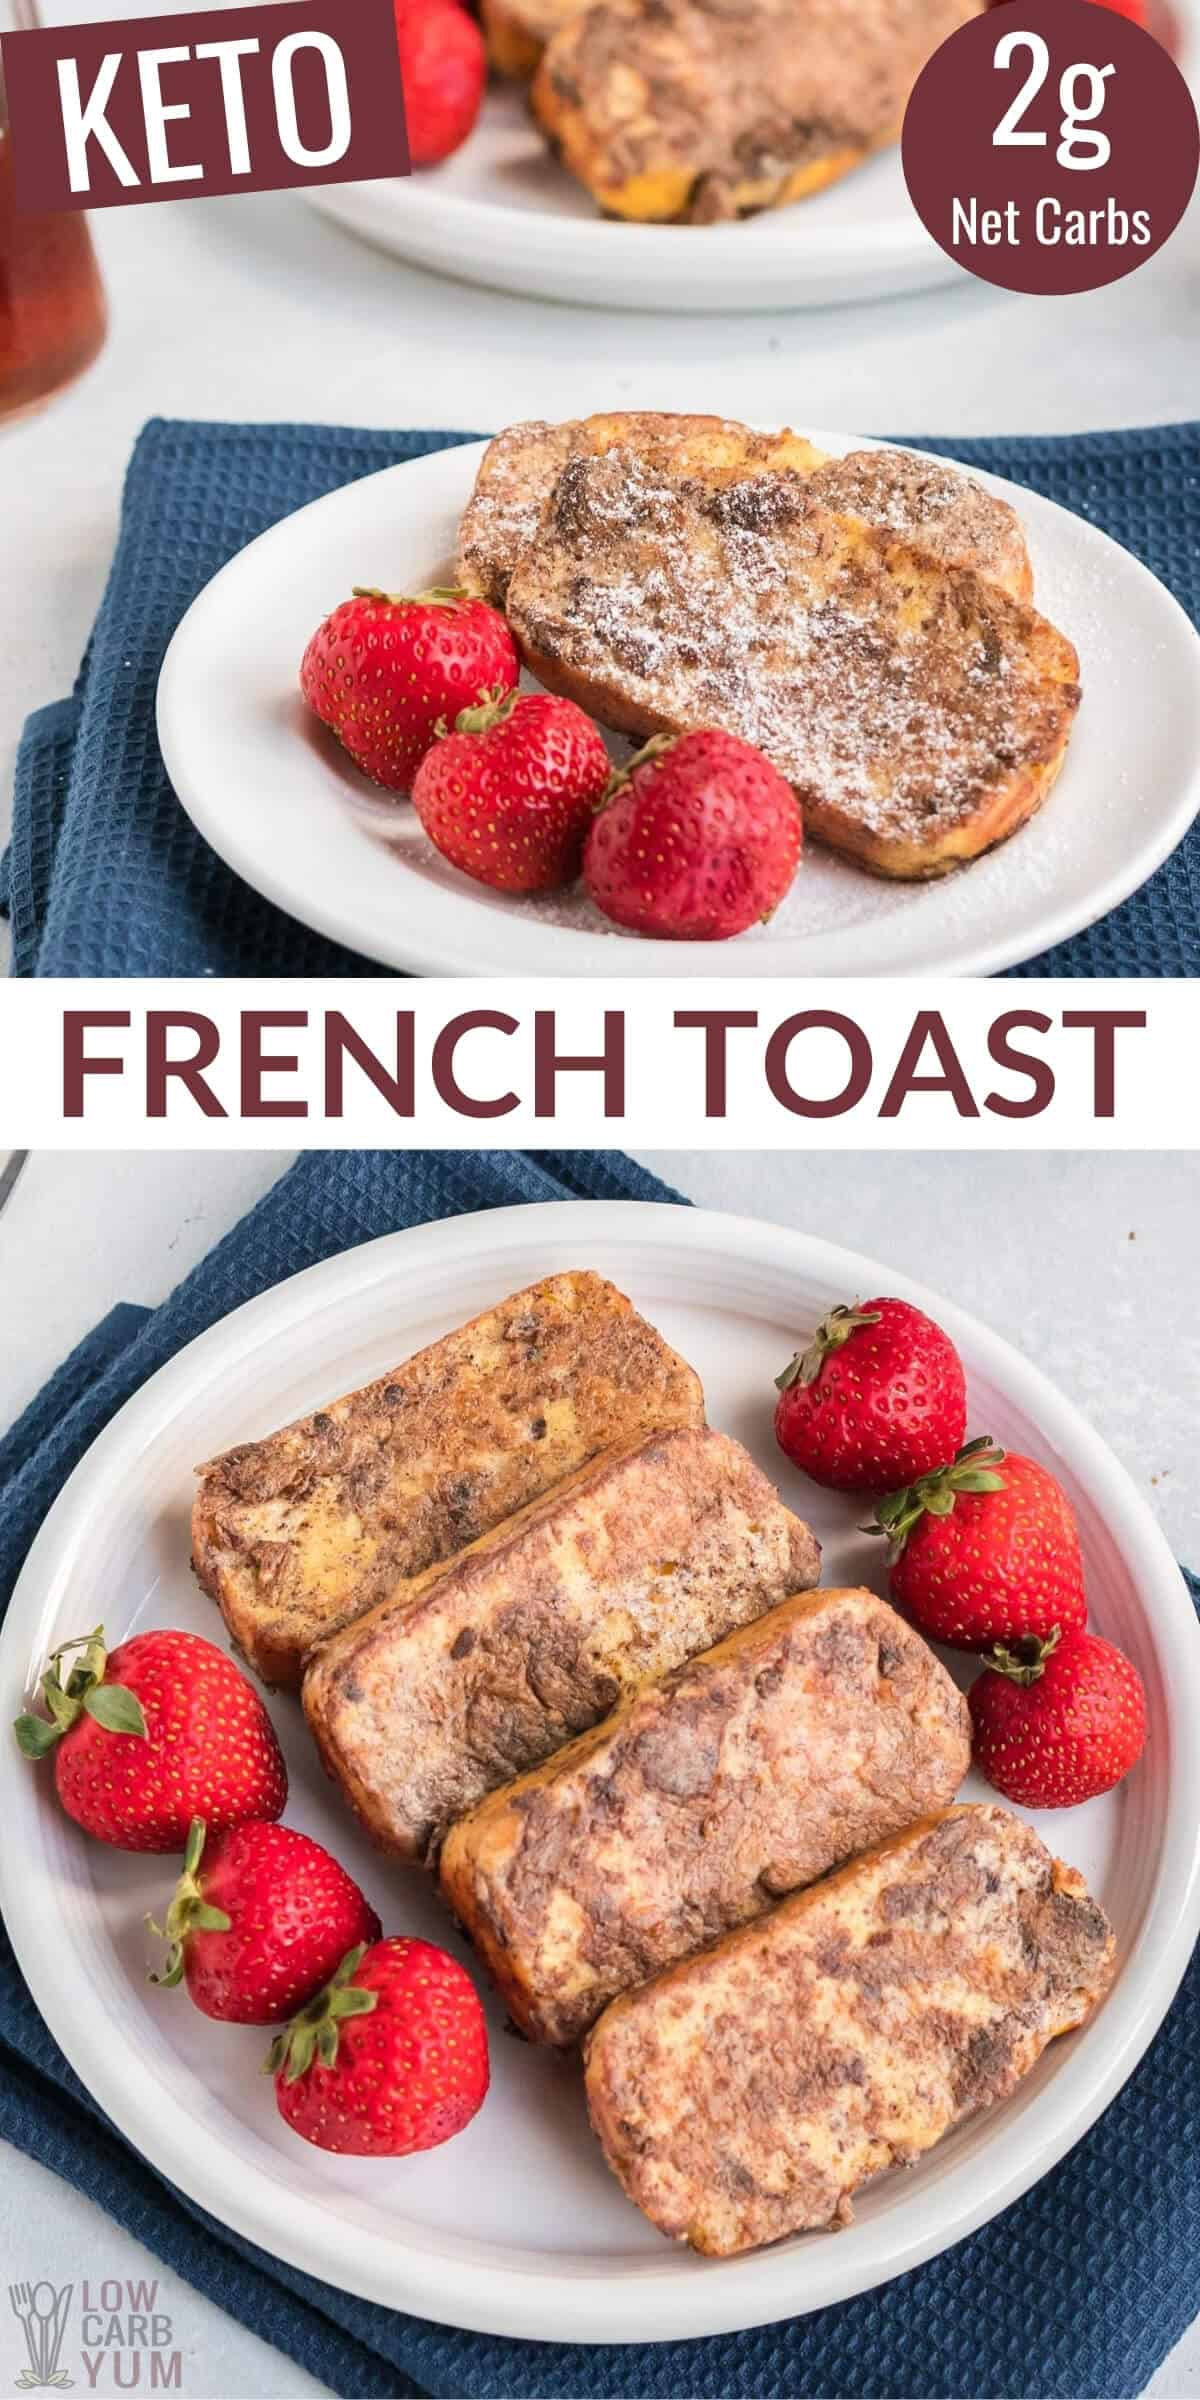 low-carb keto french toast recipe